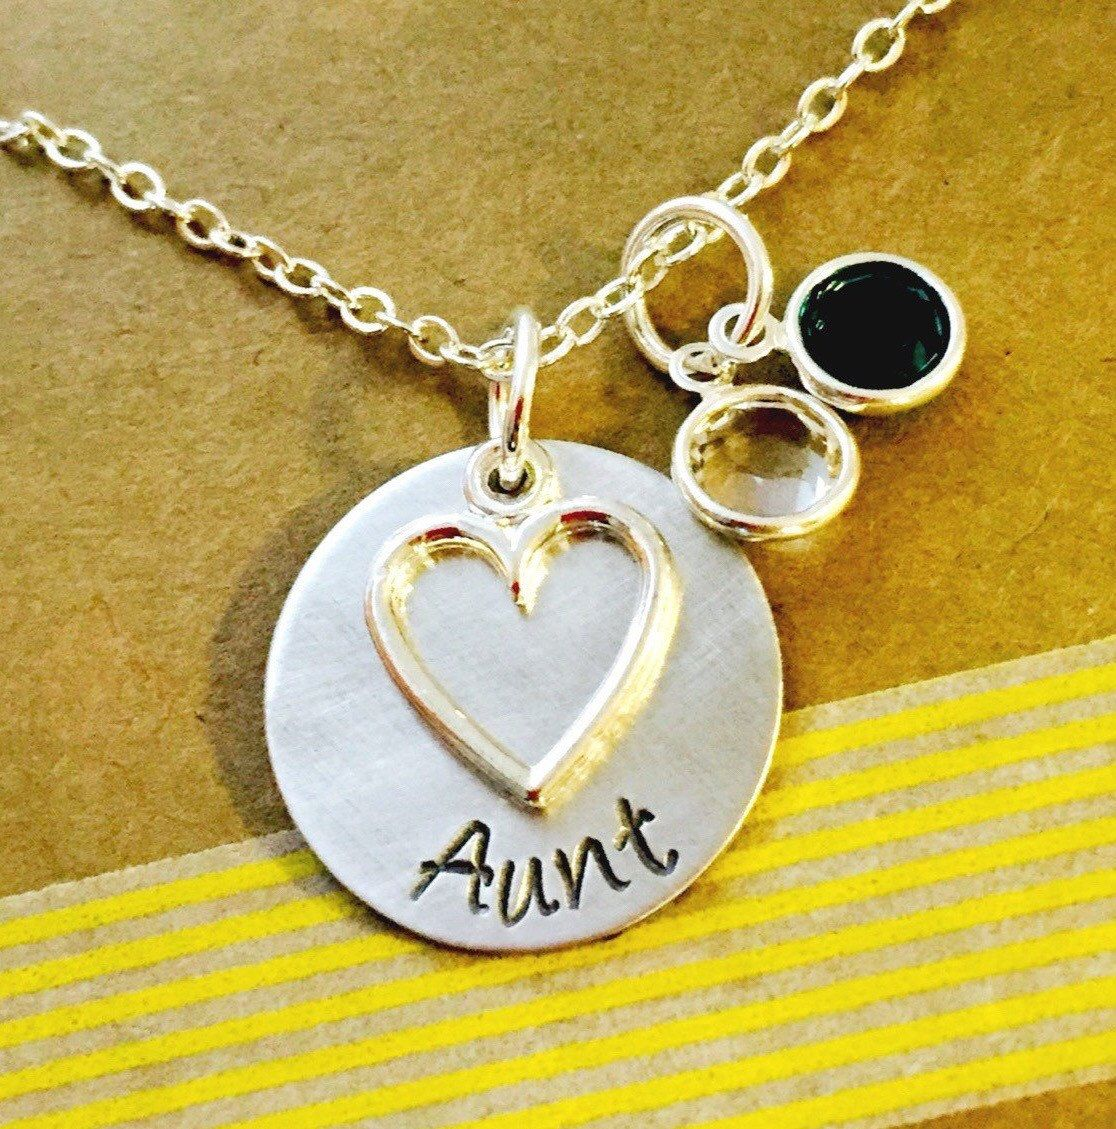 for niece com steel from uncle gift stainless pendant in nephew tag alibaba dog accessories aunt item pendants aliexpress necklace on jewelry